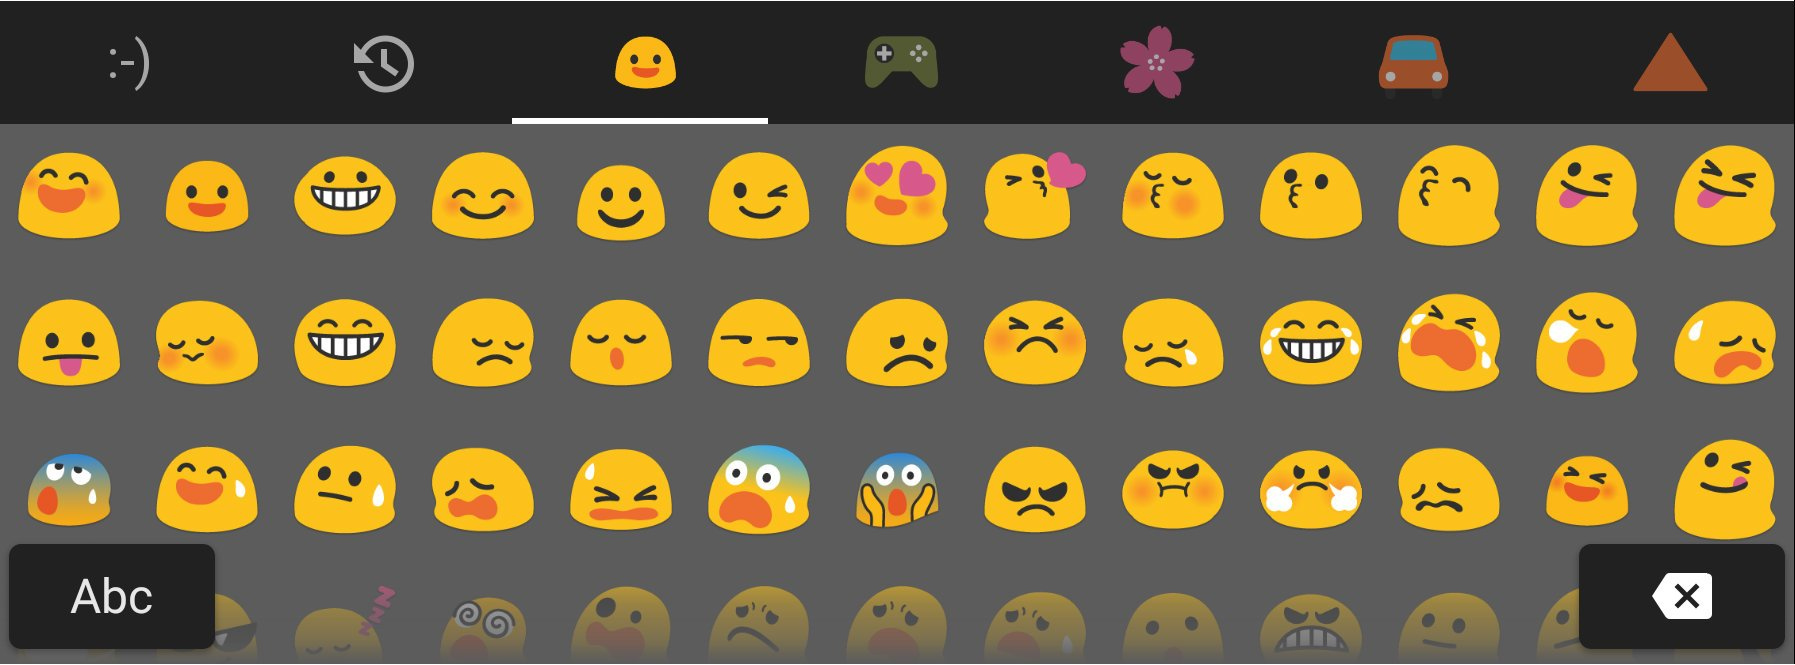 Apple Emojis For Android